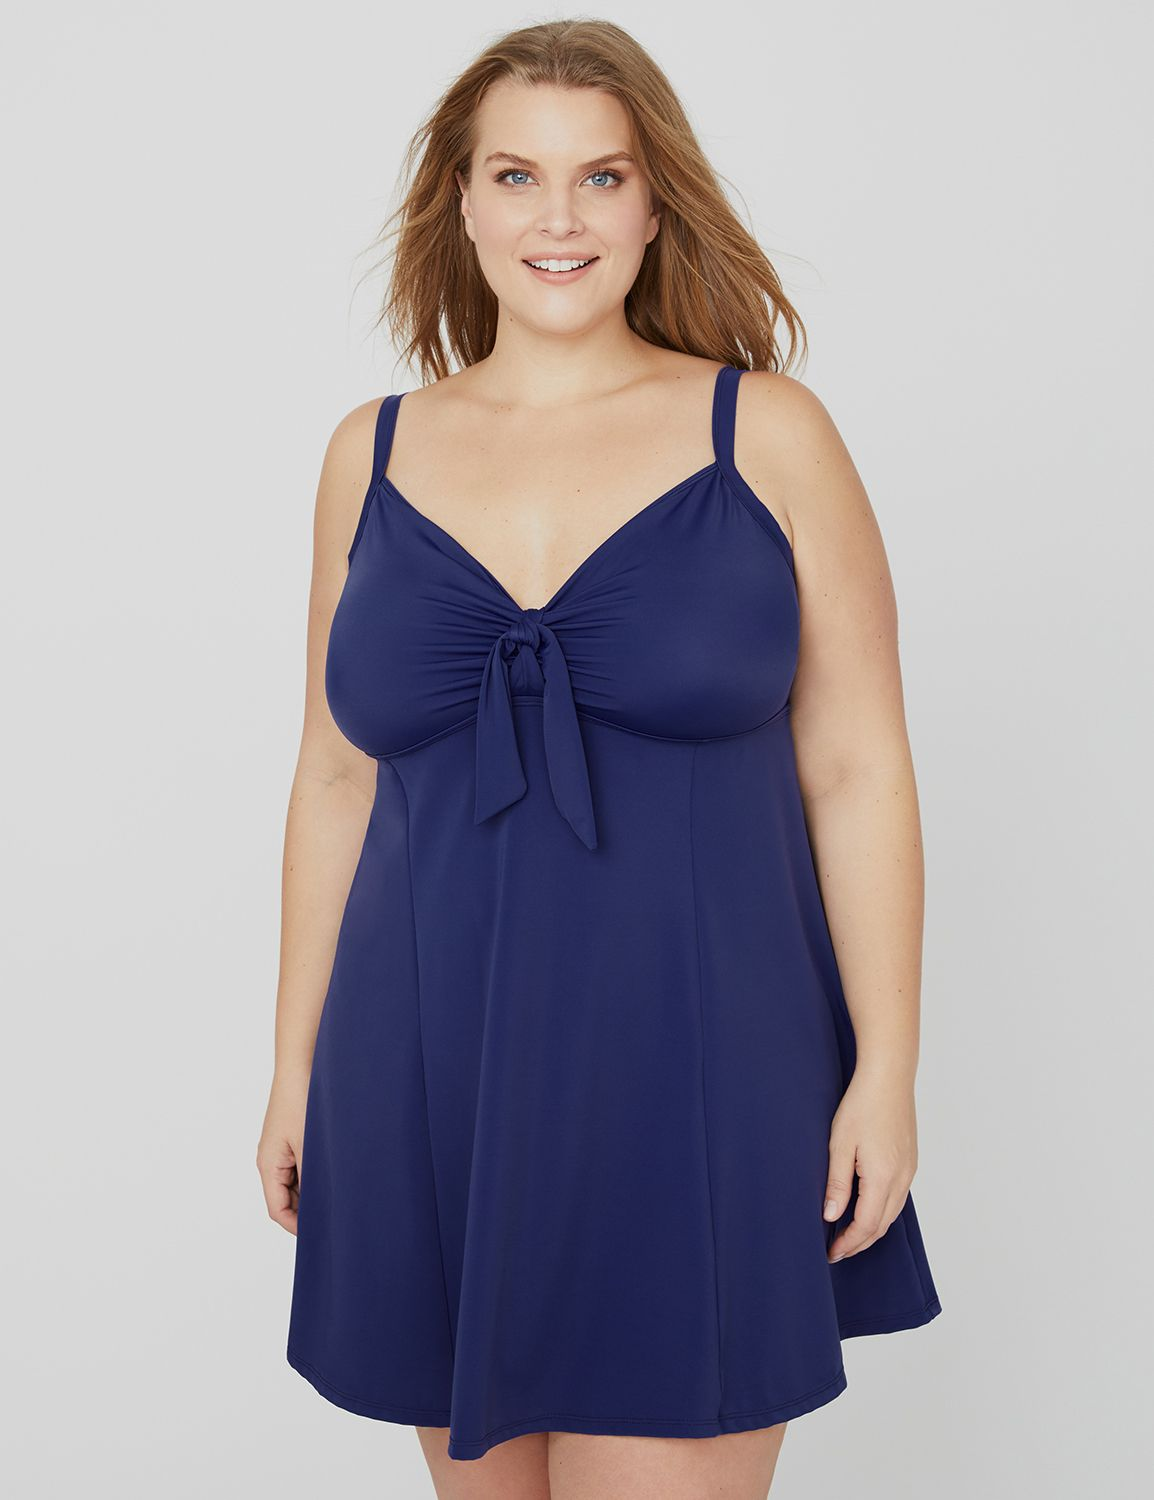 Sugar Hollow Swimdress Tie Front Swim Dress MP-300094191